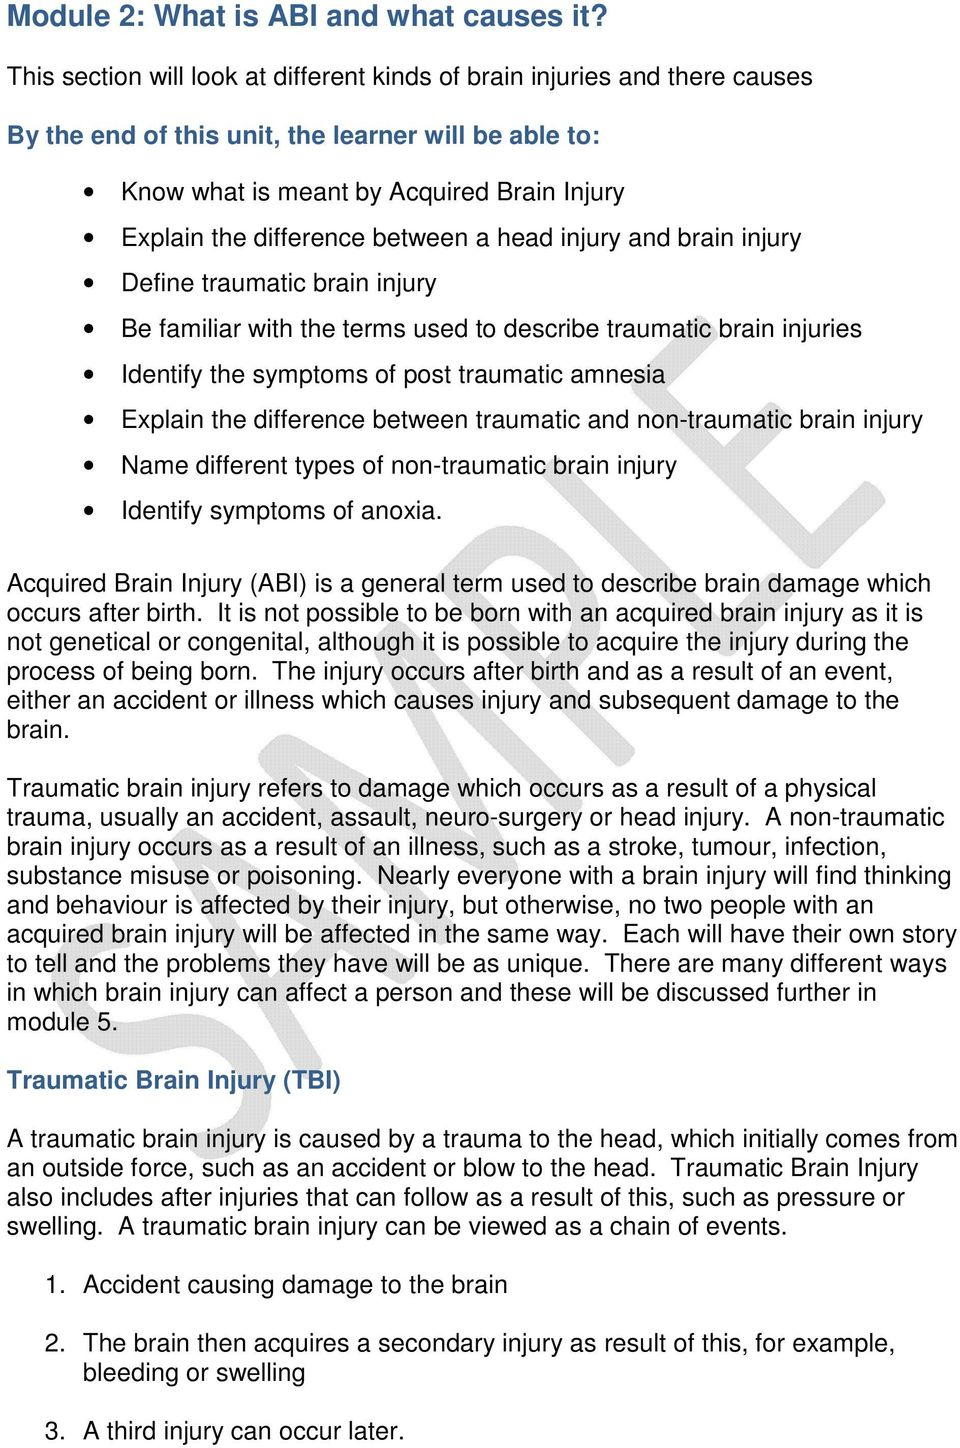 between a head injury and brain injury Define traumatic brain injury Be familiar with the terms used to describe traumatic brain injuries Identify the symptoms of post traumatic amnesia Explain the